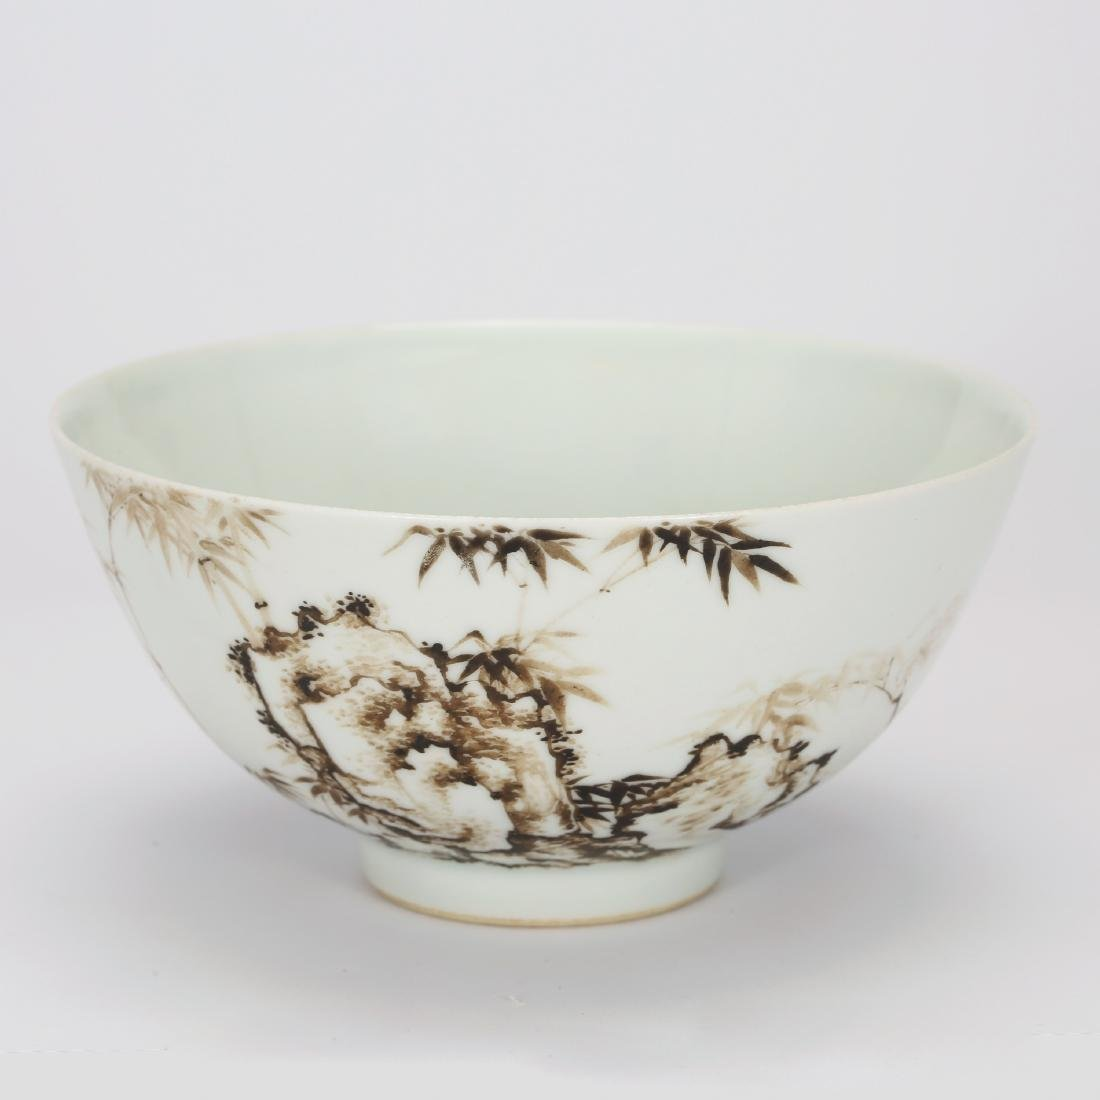 CHINESE PAINTED PORCELAIN BOWL WITH MARK, QING DYNASTY